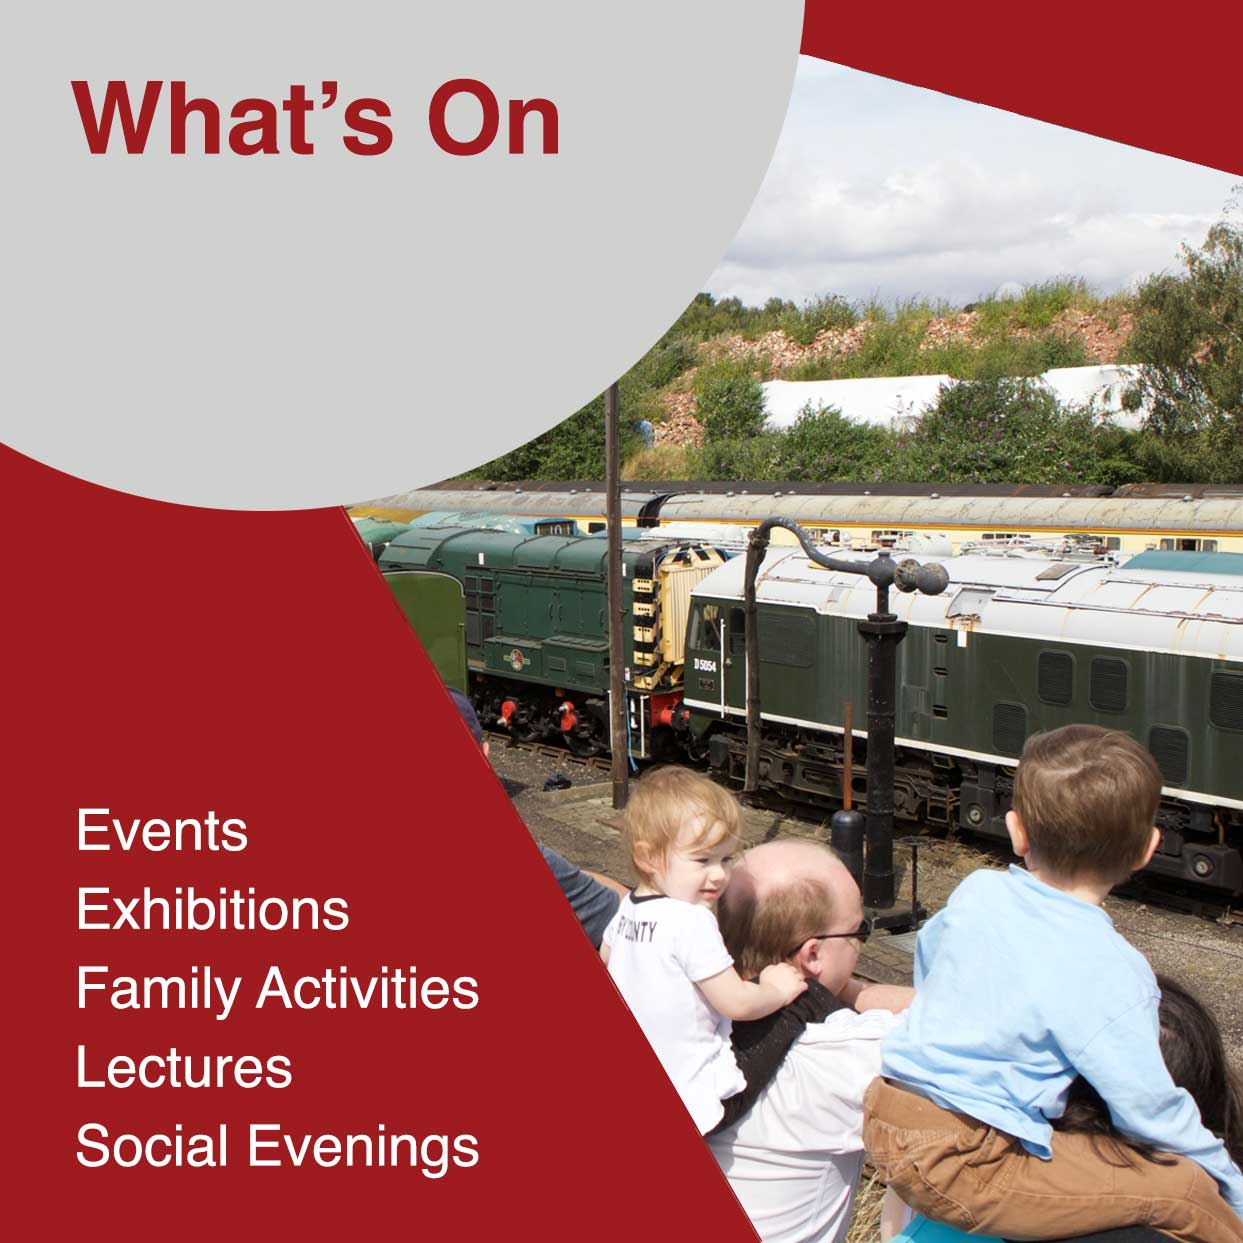 Events, Exhibitions, Family activiies at barrow Hill Roundhouse and Railway Museum in Derbyshire